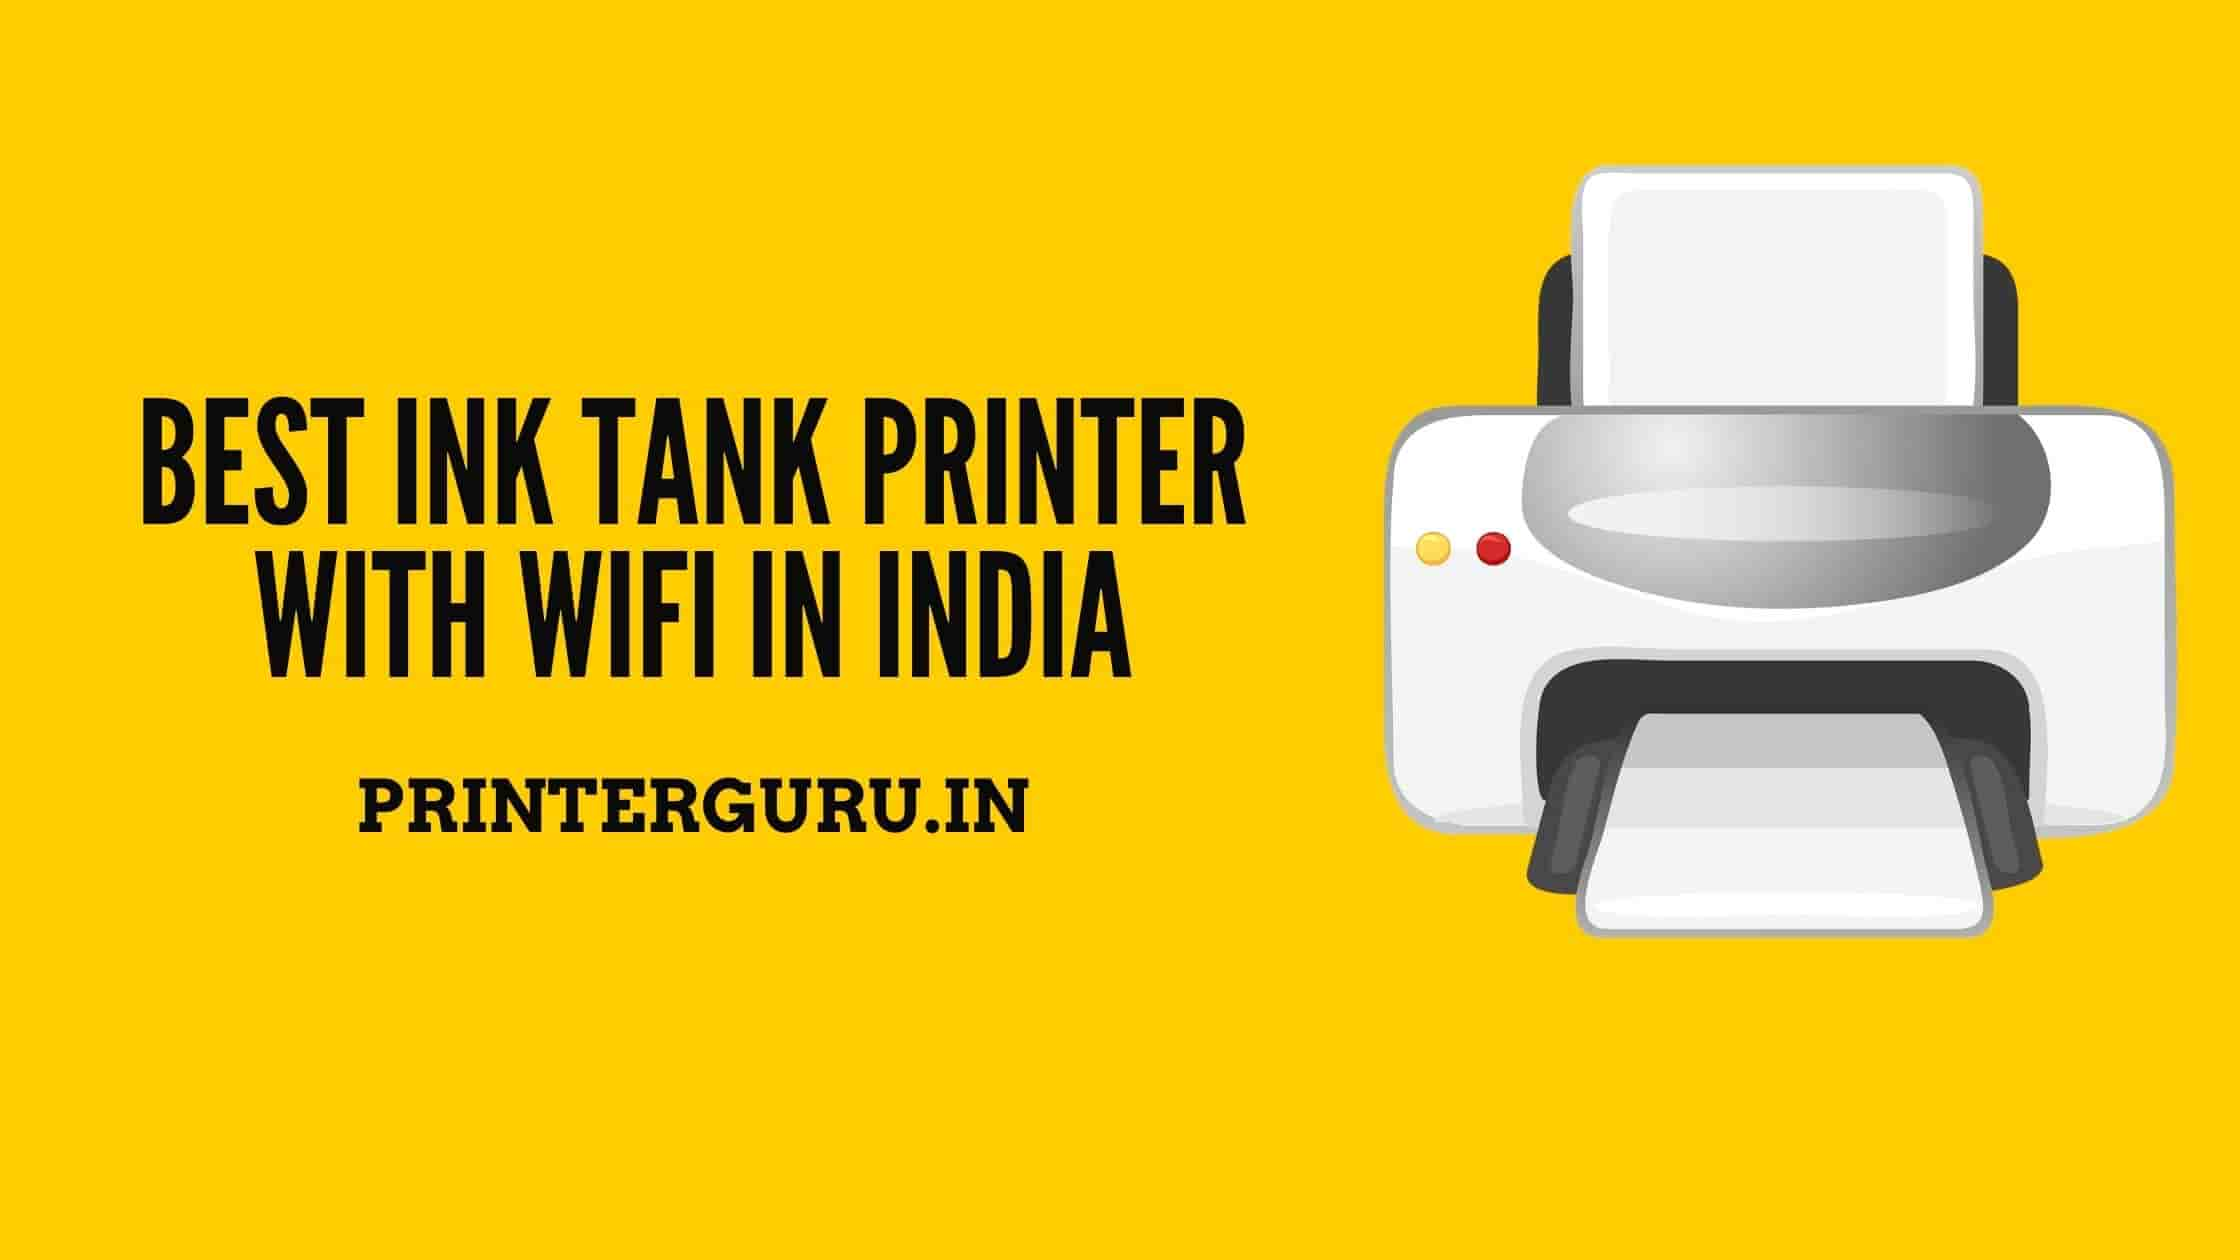 Best Ink Tank Printer With WiFi In India